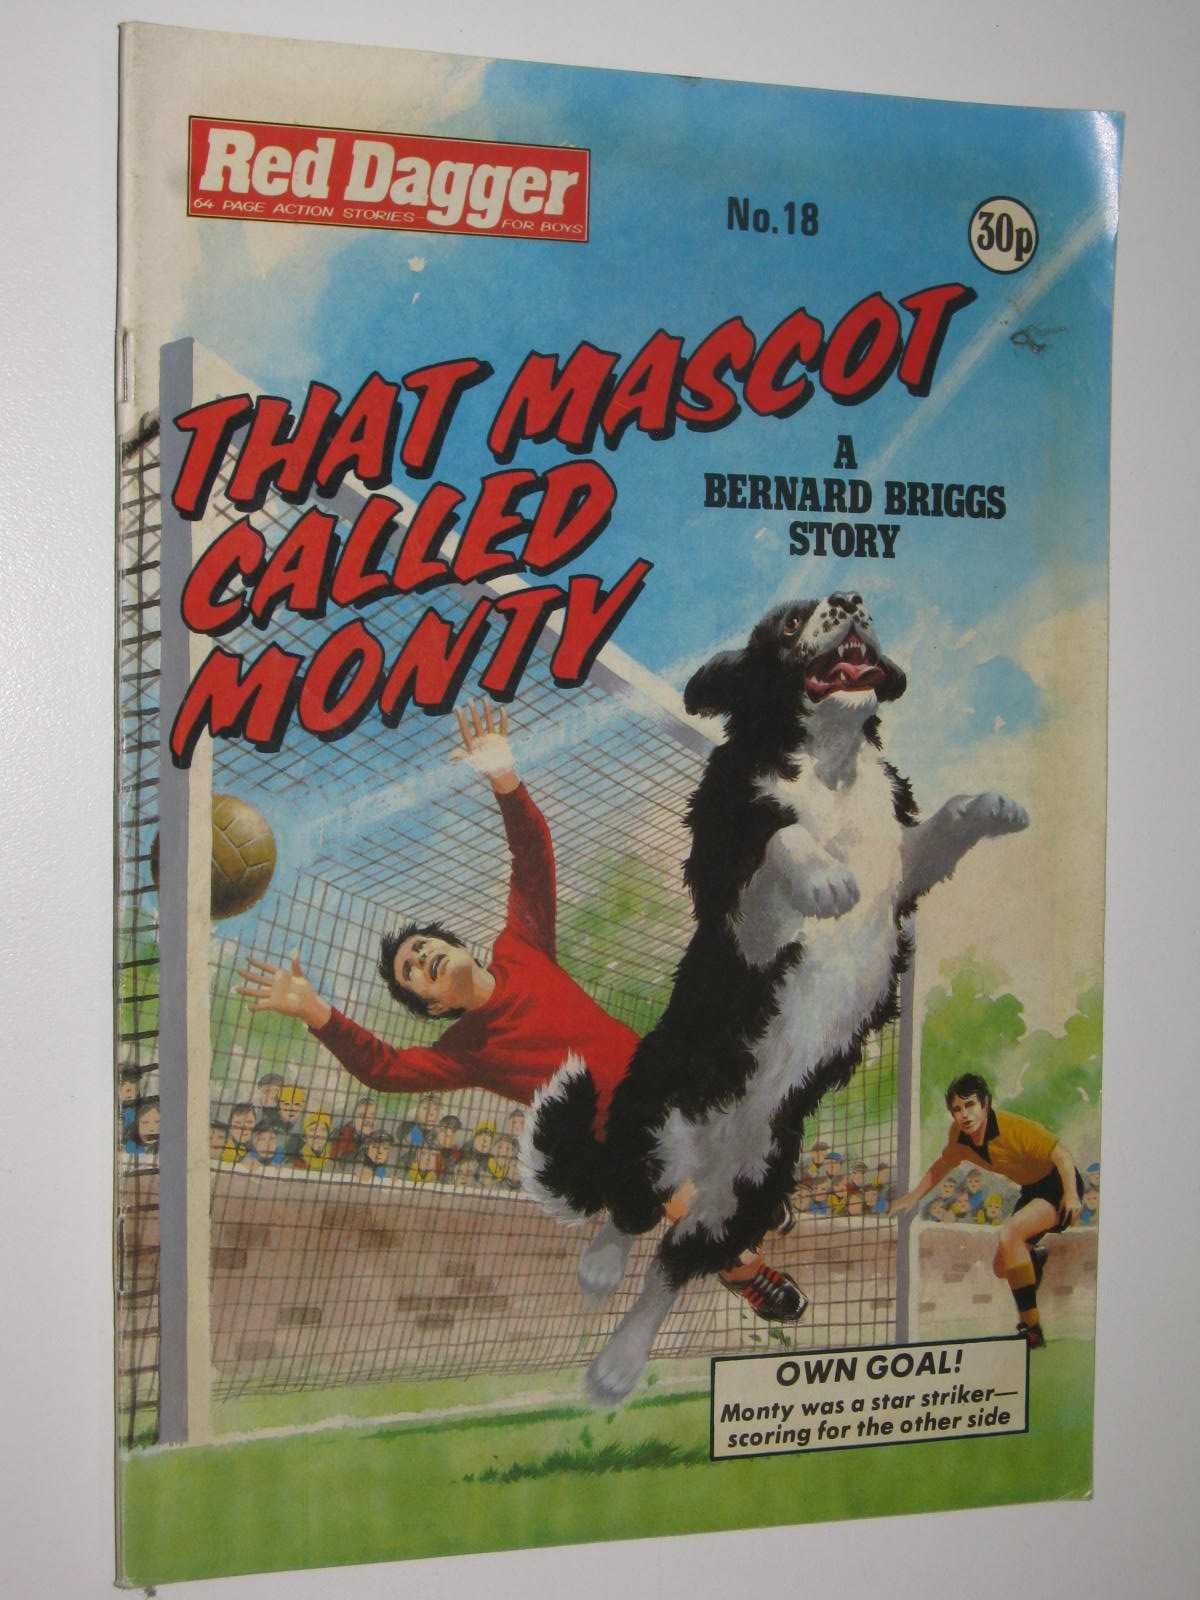 Image for Red Dagger No. 18: That Mascot Called Monty : 64 Page Action Stories for Boys